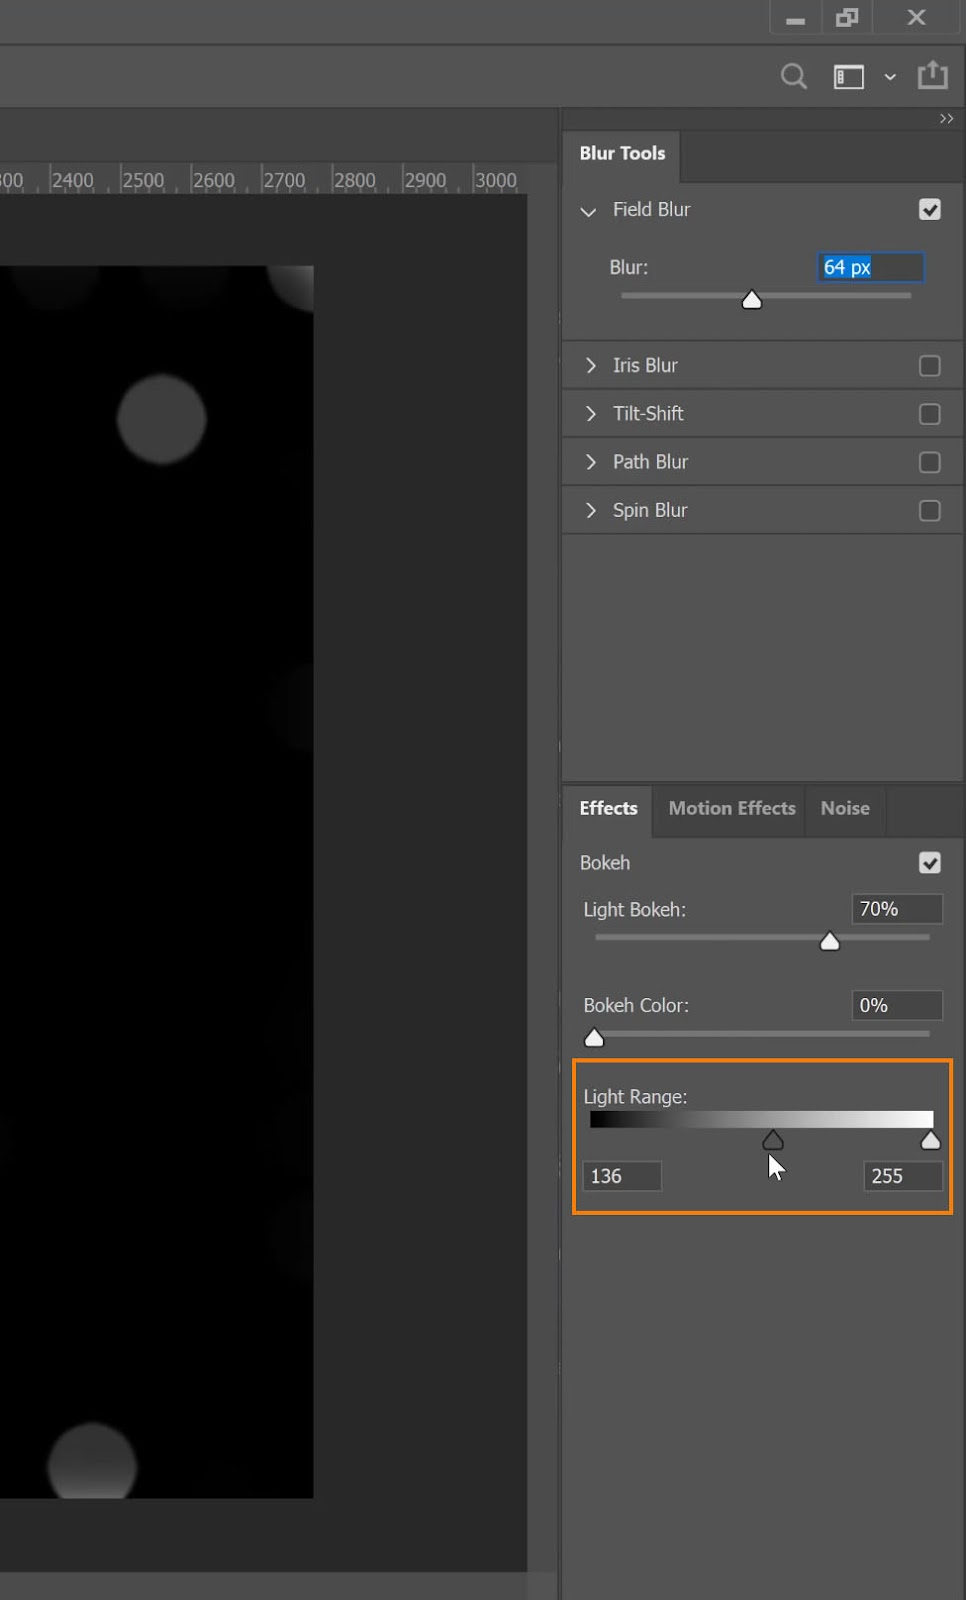 Adjust the Light Range and drag the dark handle to the middle of the slider